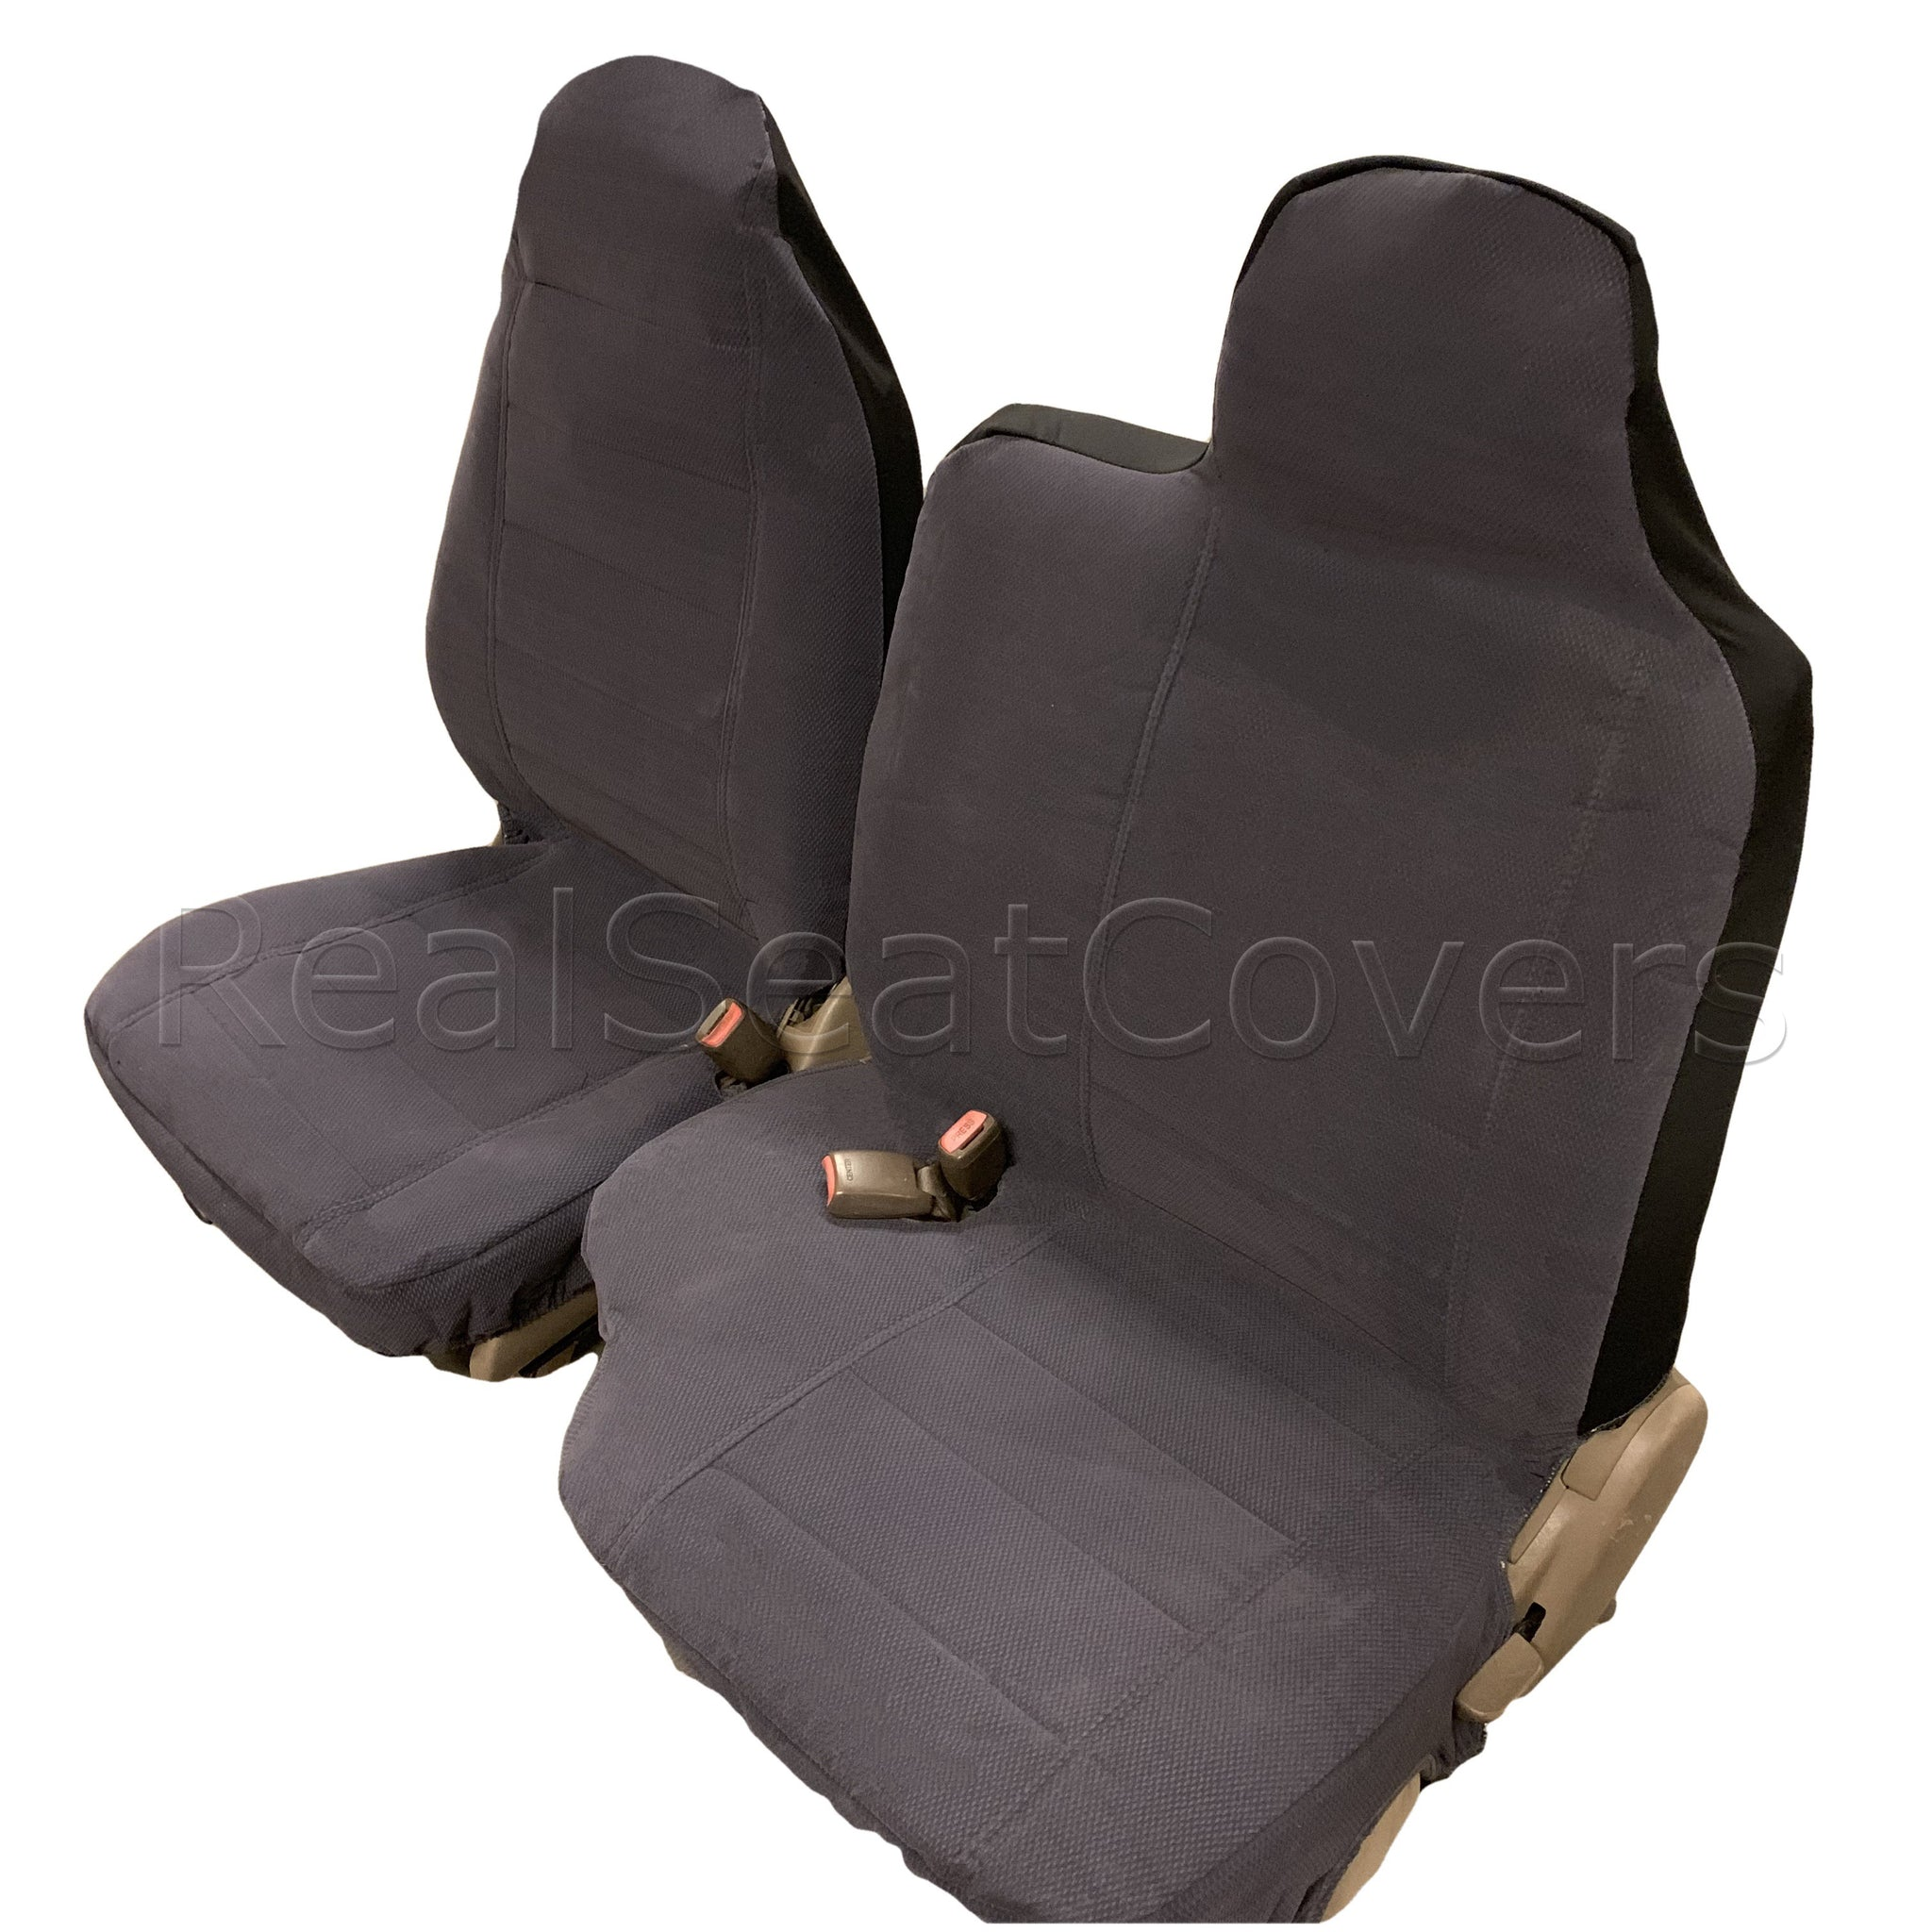 Amazing Seat Cover For 1998 2003 Ford Ranger Regular Cab High Back 60 40 Split Bench Andrewgaddart Wooden Chair Designs For Living Room Andrewgaddartcom